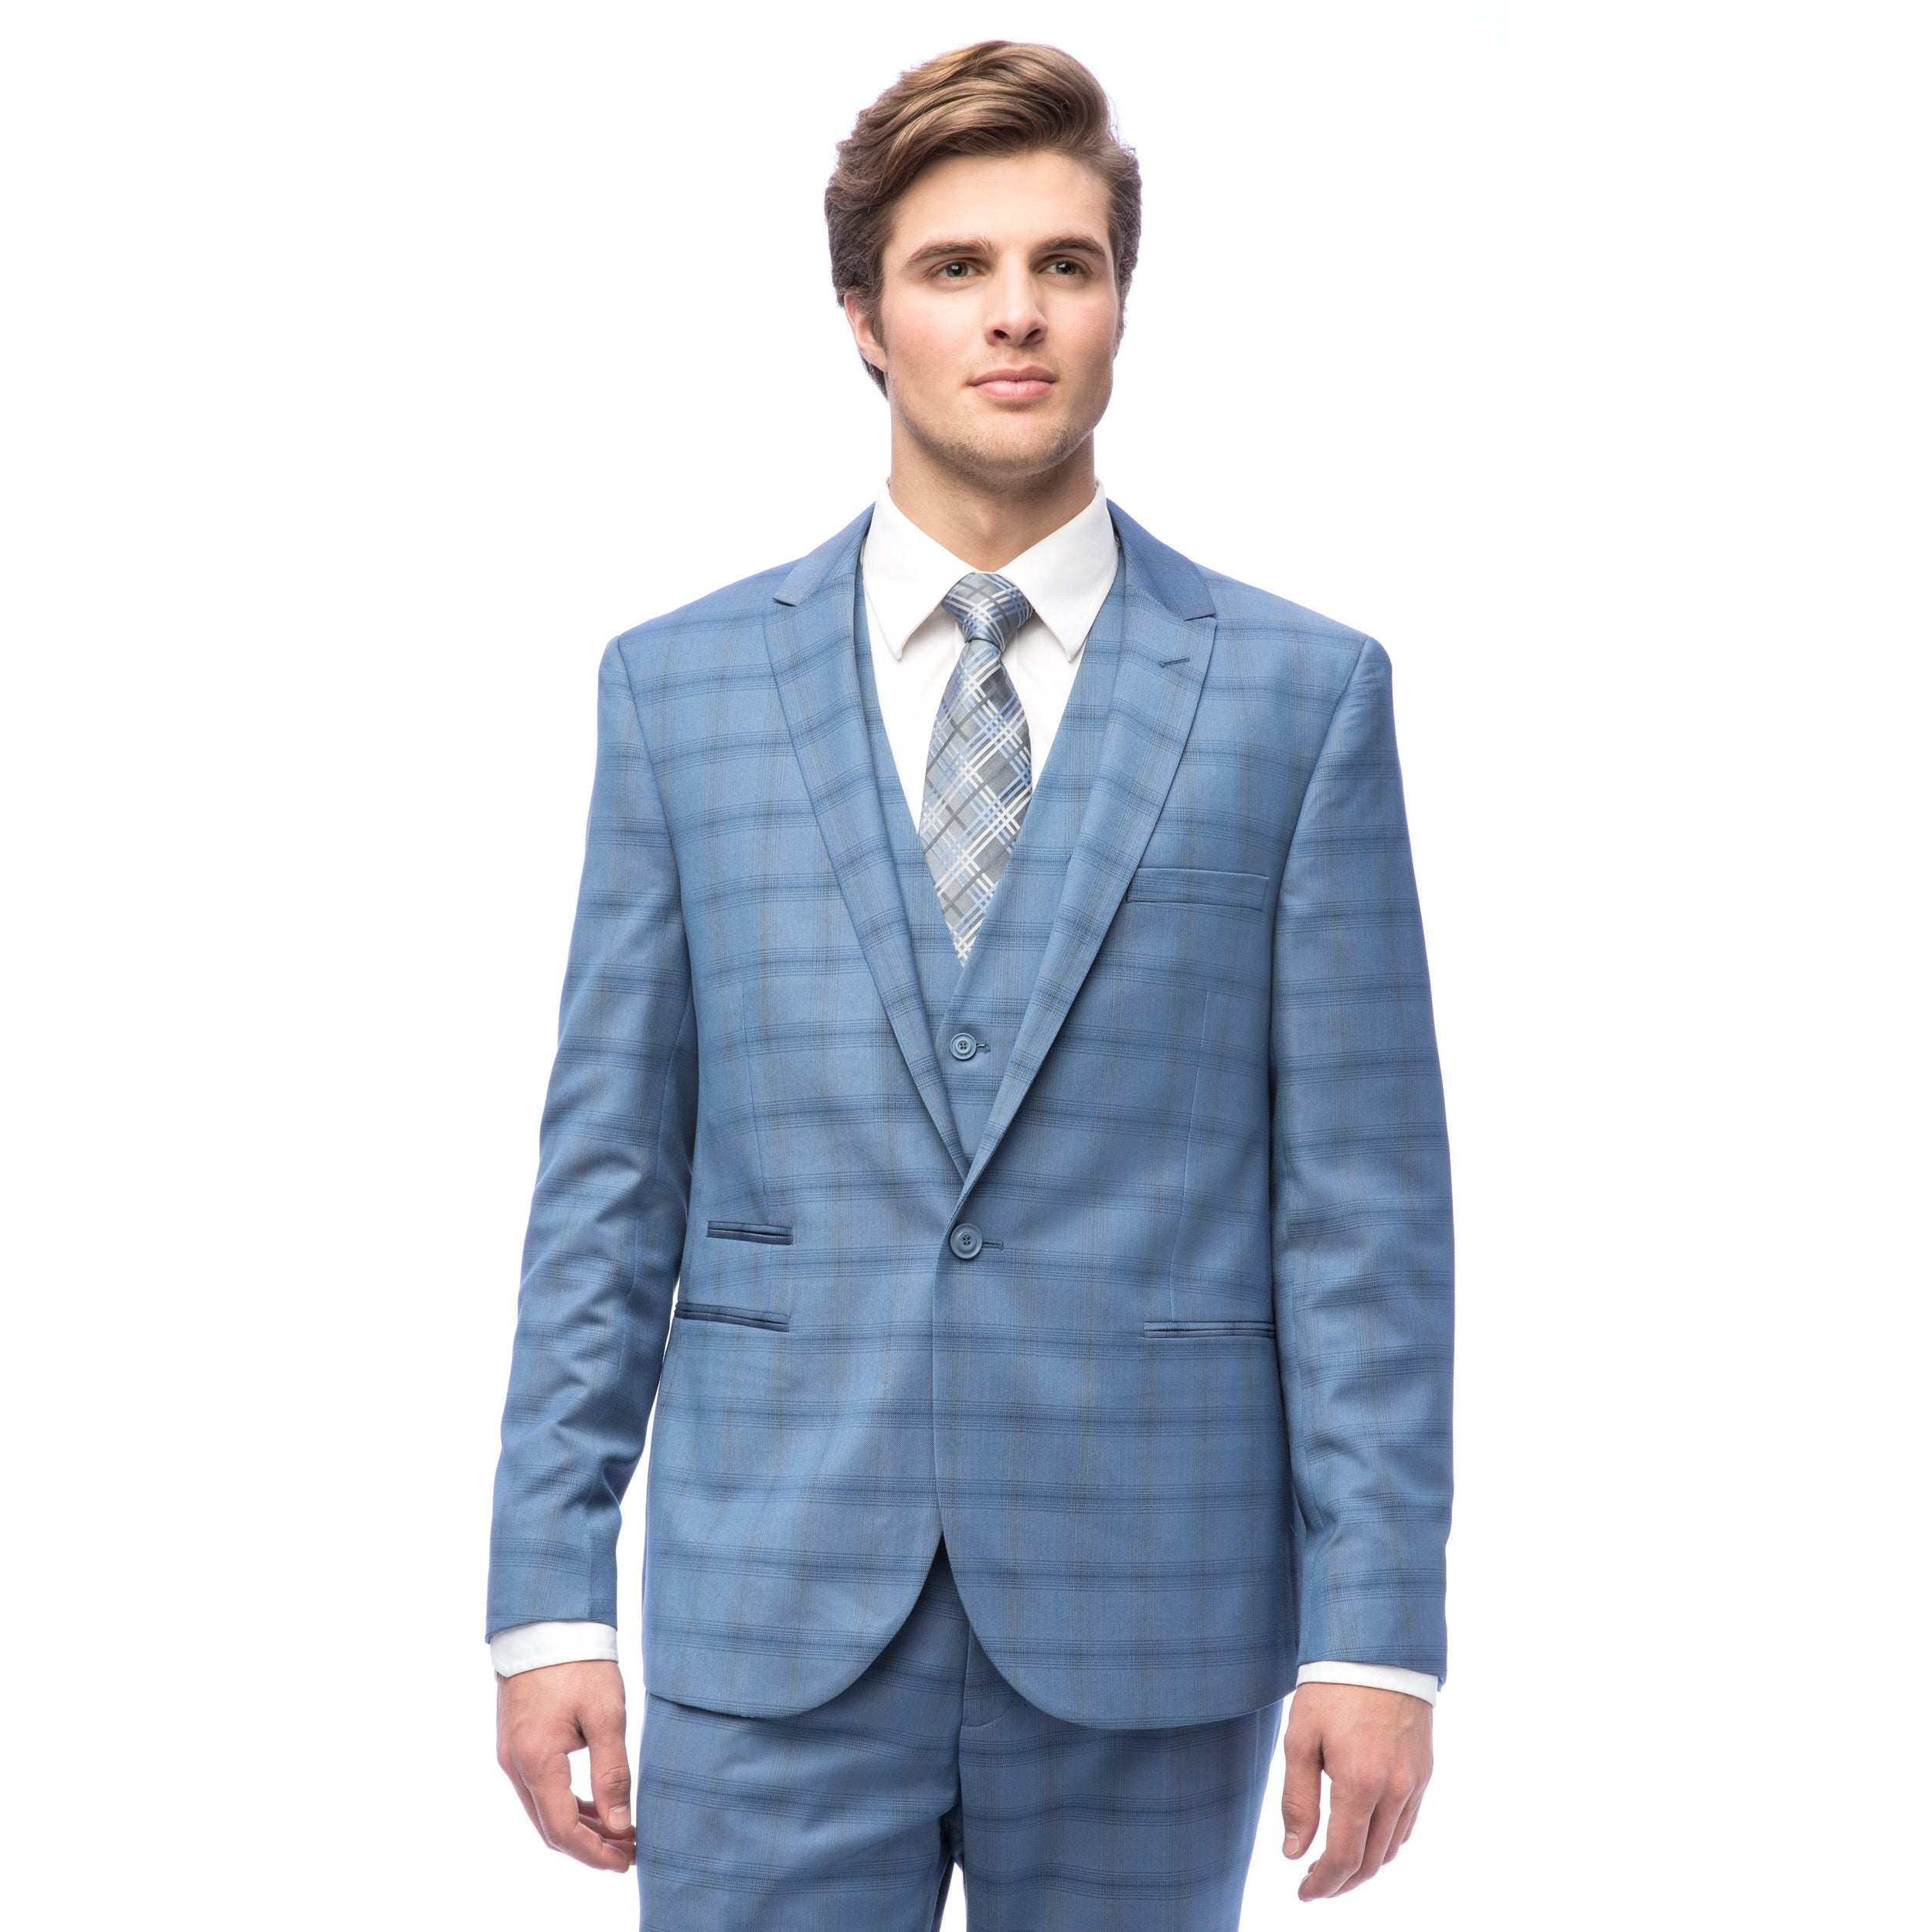 Magnificent Gents Wedding Suits Gallery - All Wedding Dresses ...